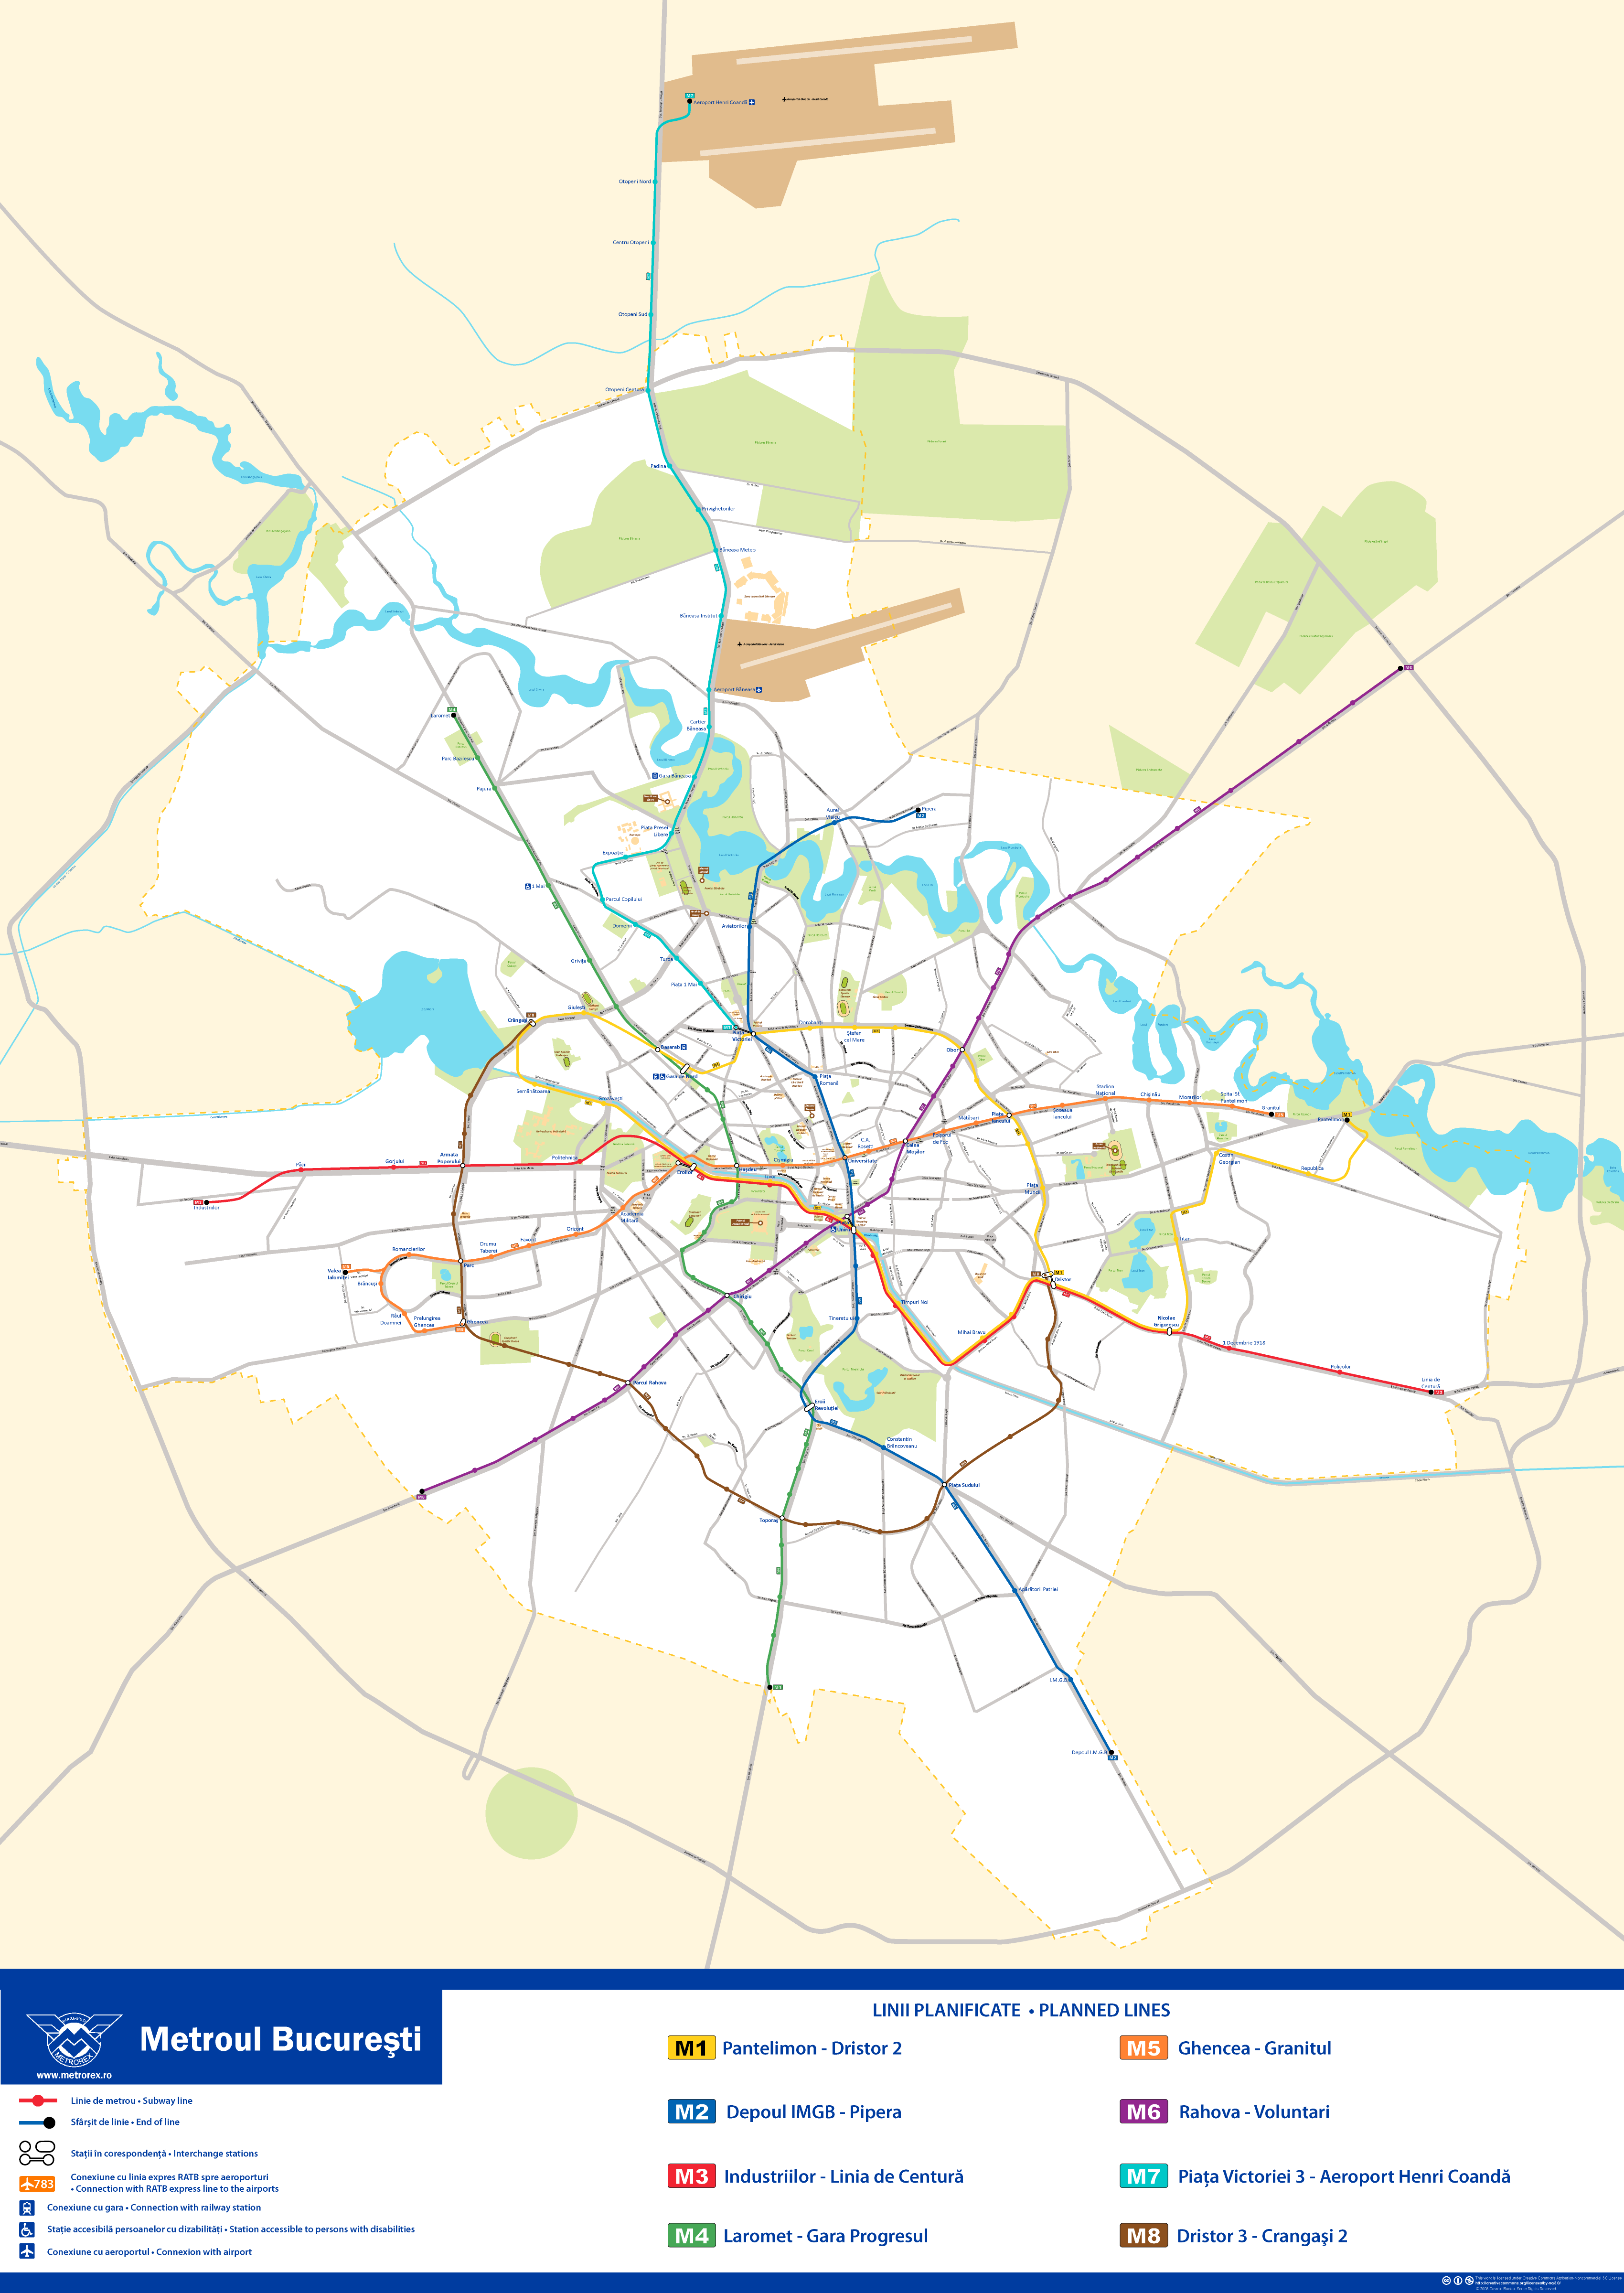 Metro map of Bucharest